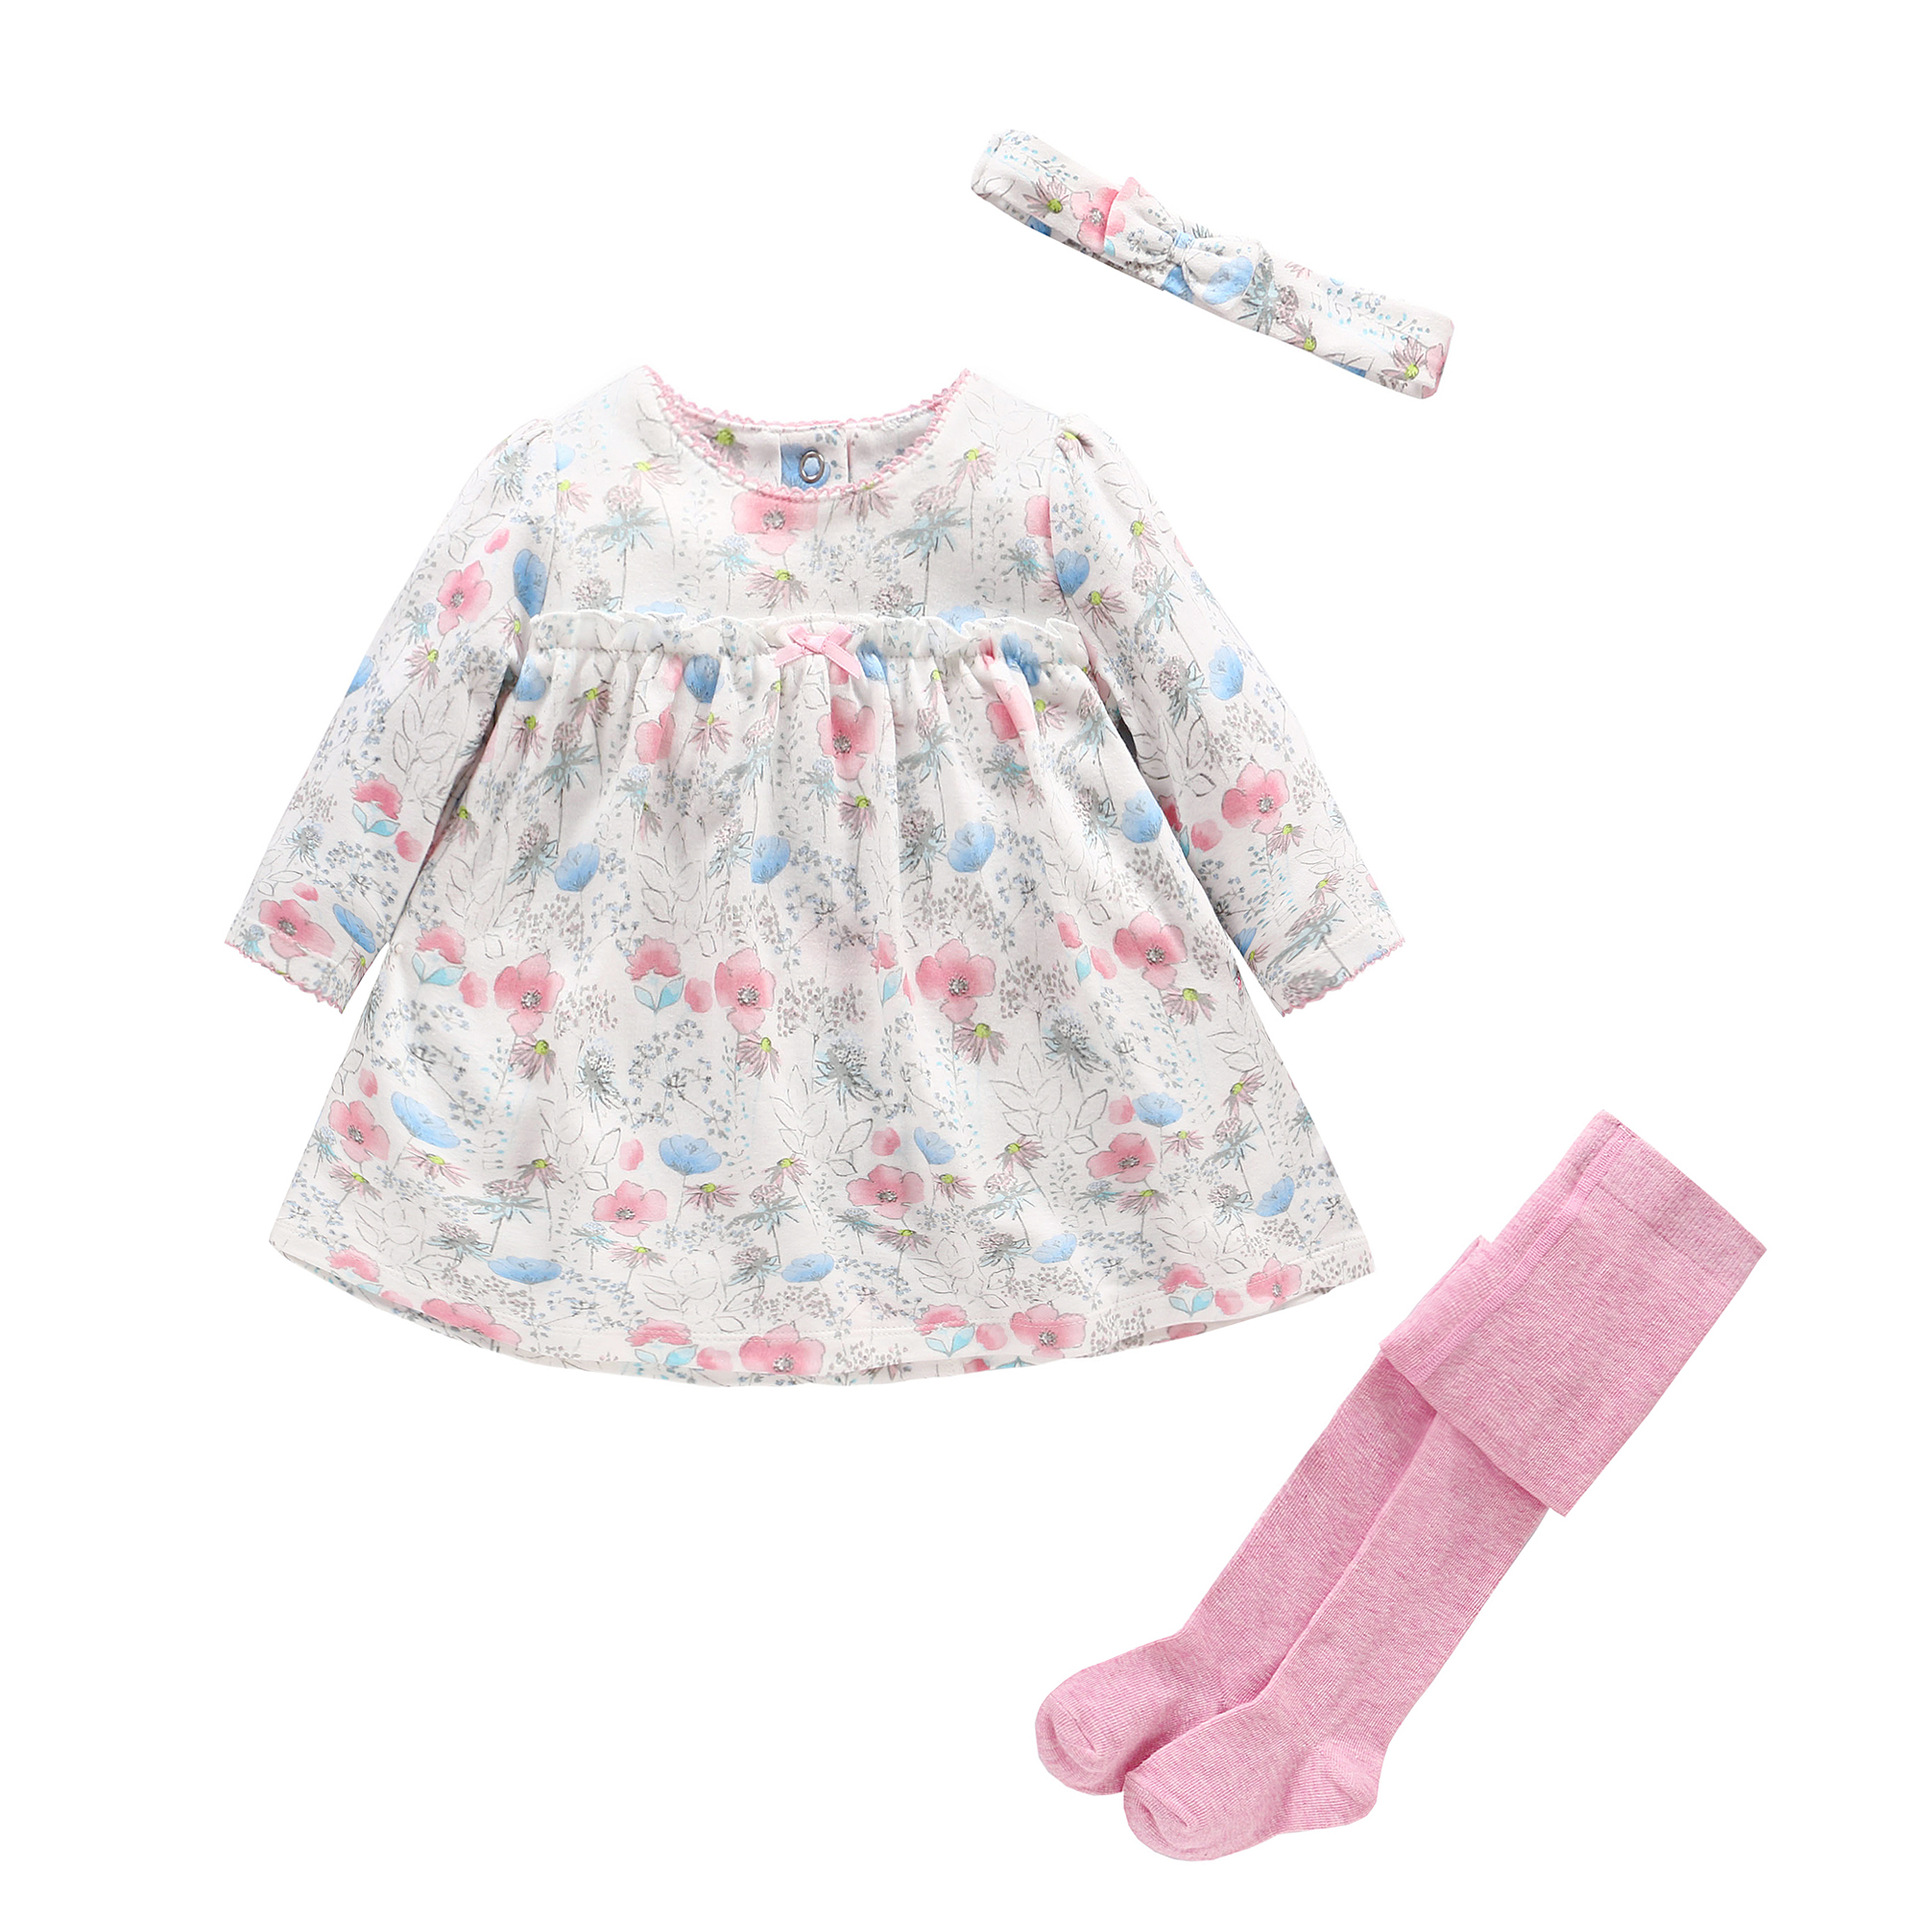 Baby Girl Clothes Set Newborn Girl Baby Dress+ Headband+Pantyhose 3pcs Sets Baby Floral Clothing for Gift Sets Infant Outfit new baby girl clothing sets lace tutu romper dress jumpersuit headband 2pcs set bebes infant 1st birthday superman costumes 0 2t